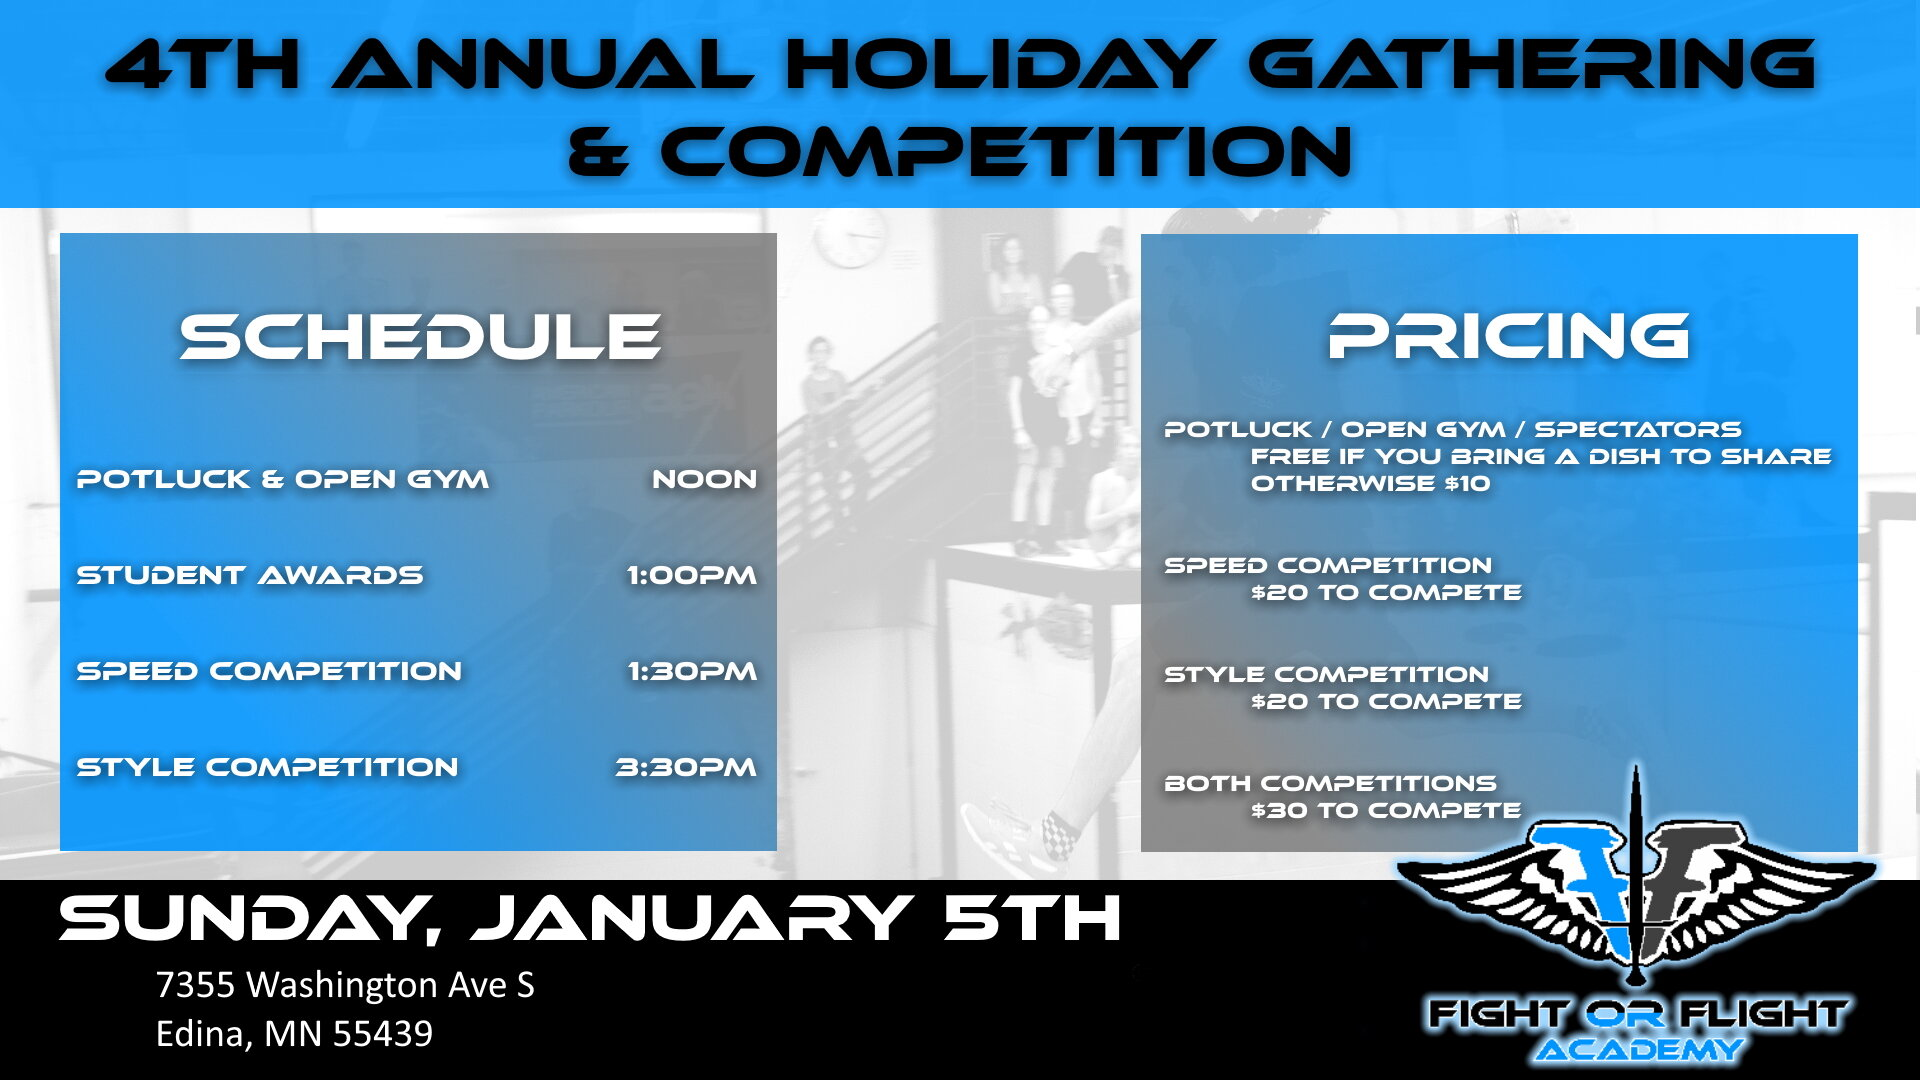 4th annual holiday gathering and competition.jpg